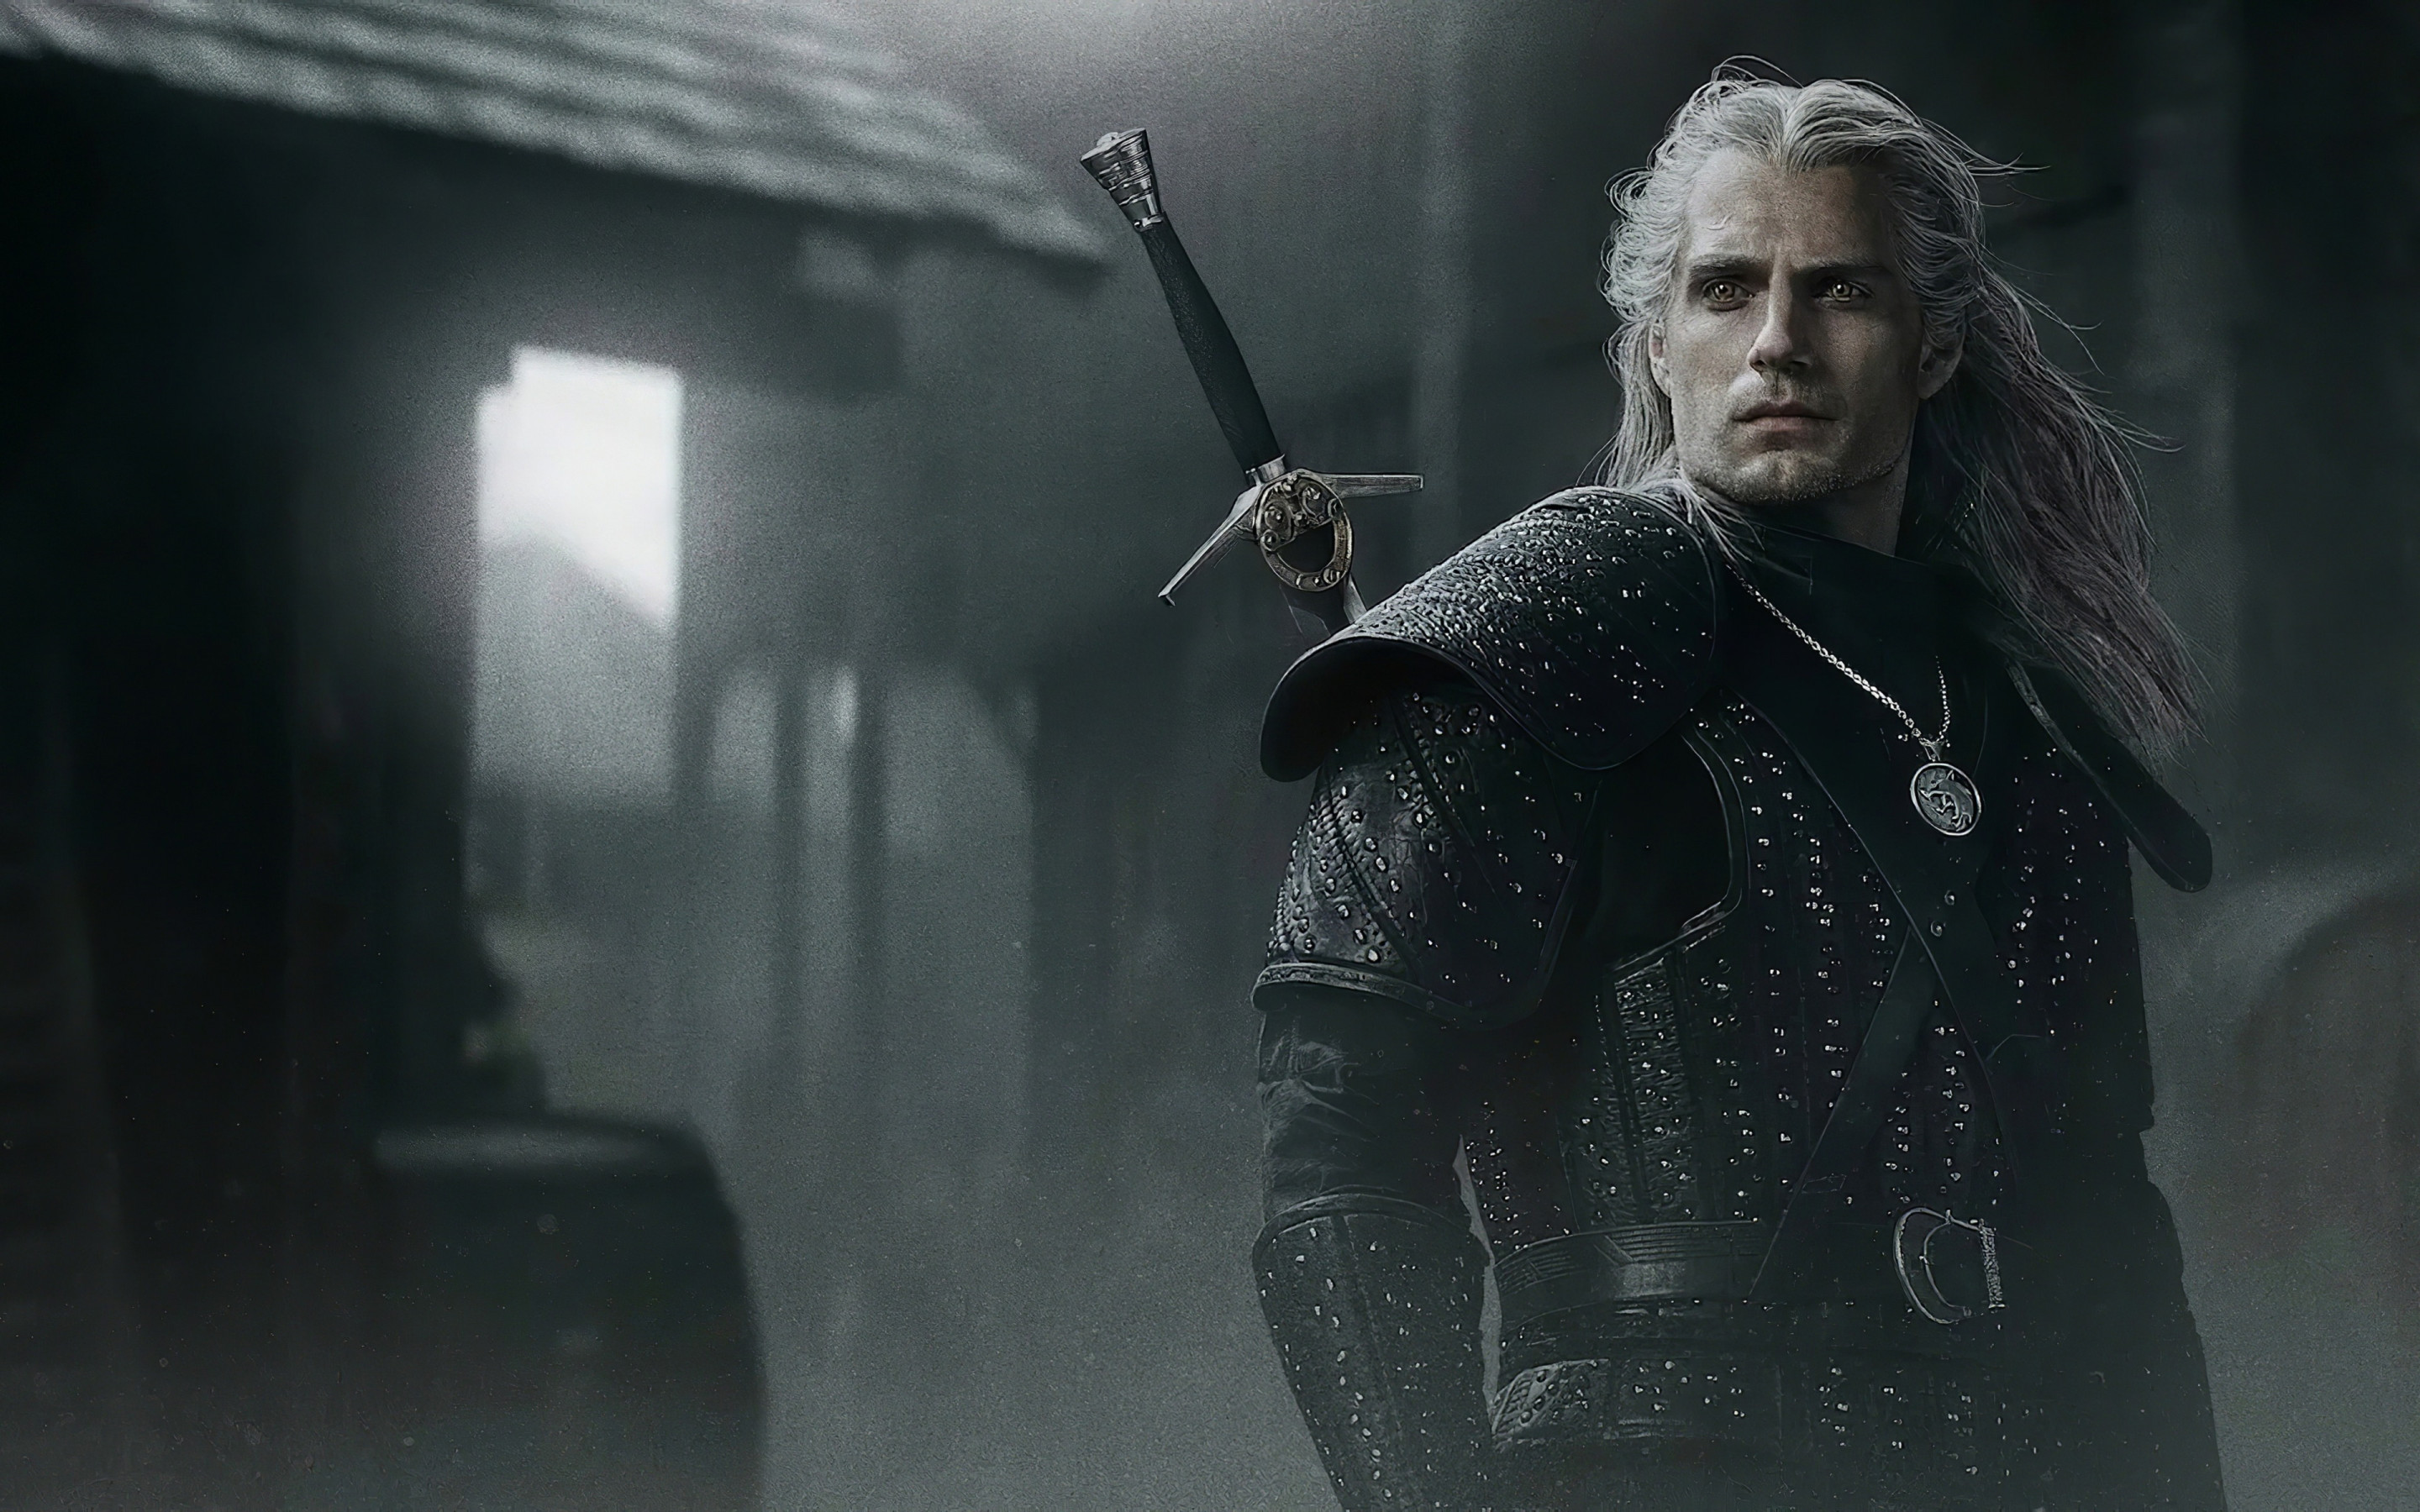 Henry Cavli in The Witcher wallpaper 2880x1800